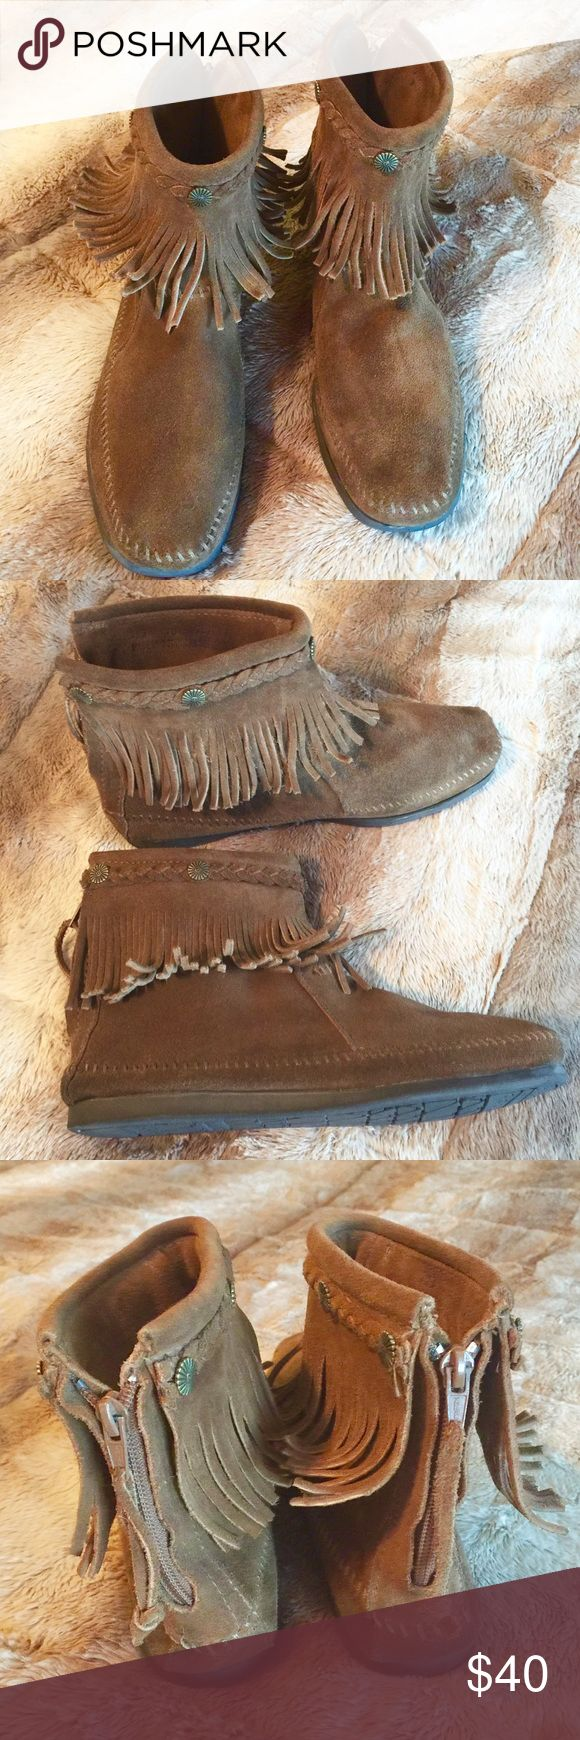 "Minnetonka Double Fringe Suede Moccasins Boots 10 Minnetonka Hi Top Side Zip Double Fringe Suede Dusty Brown Chukka Boots. Size 10. Only worn twice. Mint condition. Bottom sole measures 10 1/2"" long. No trades please 💕 Minnetonka Shoes Moccasins"